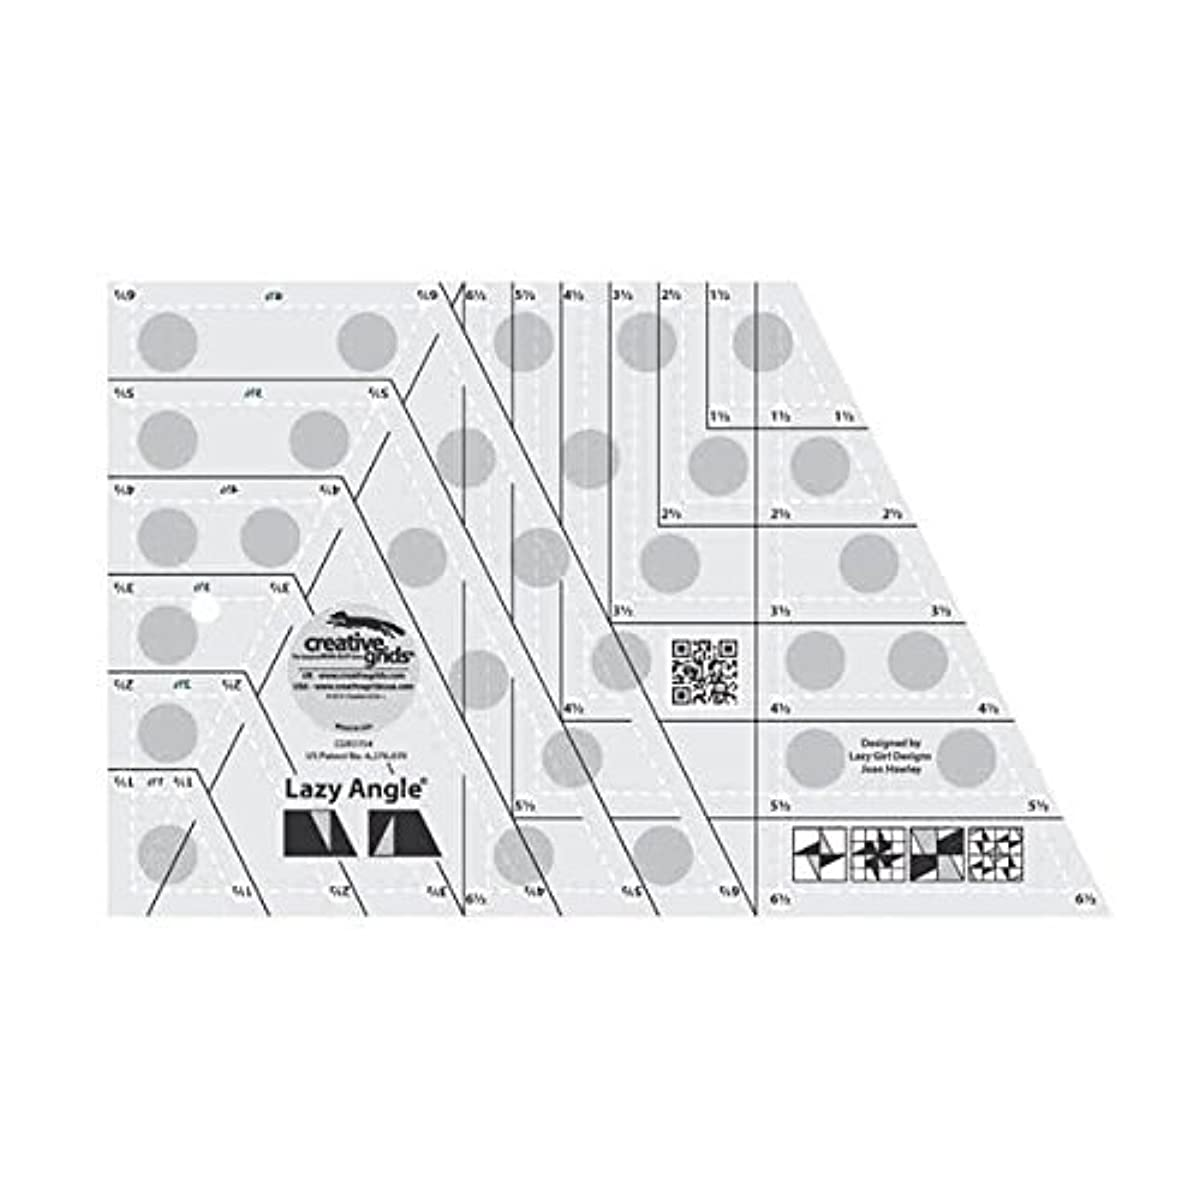 Creative Grids Lazy Angle Quilting Ruler Template CGR3754